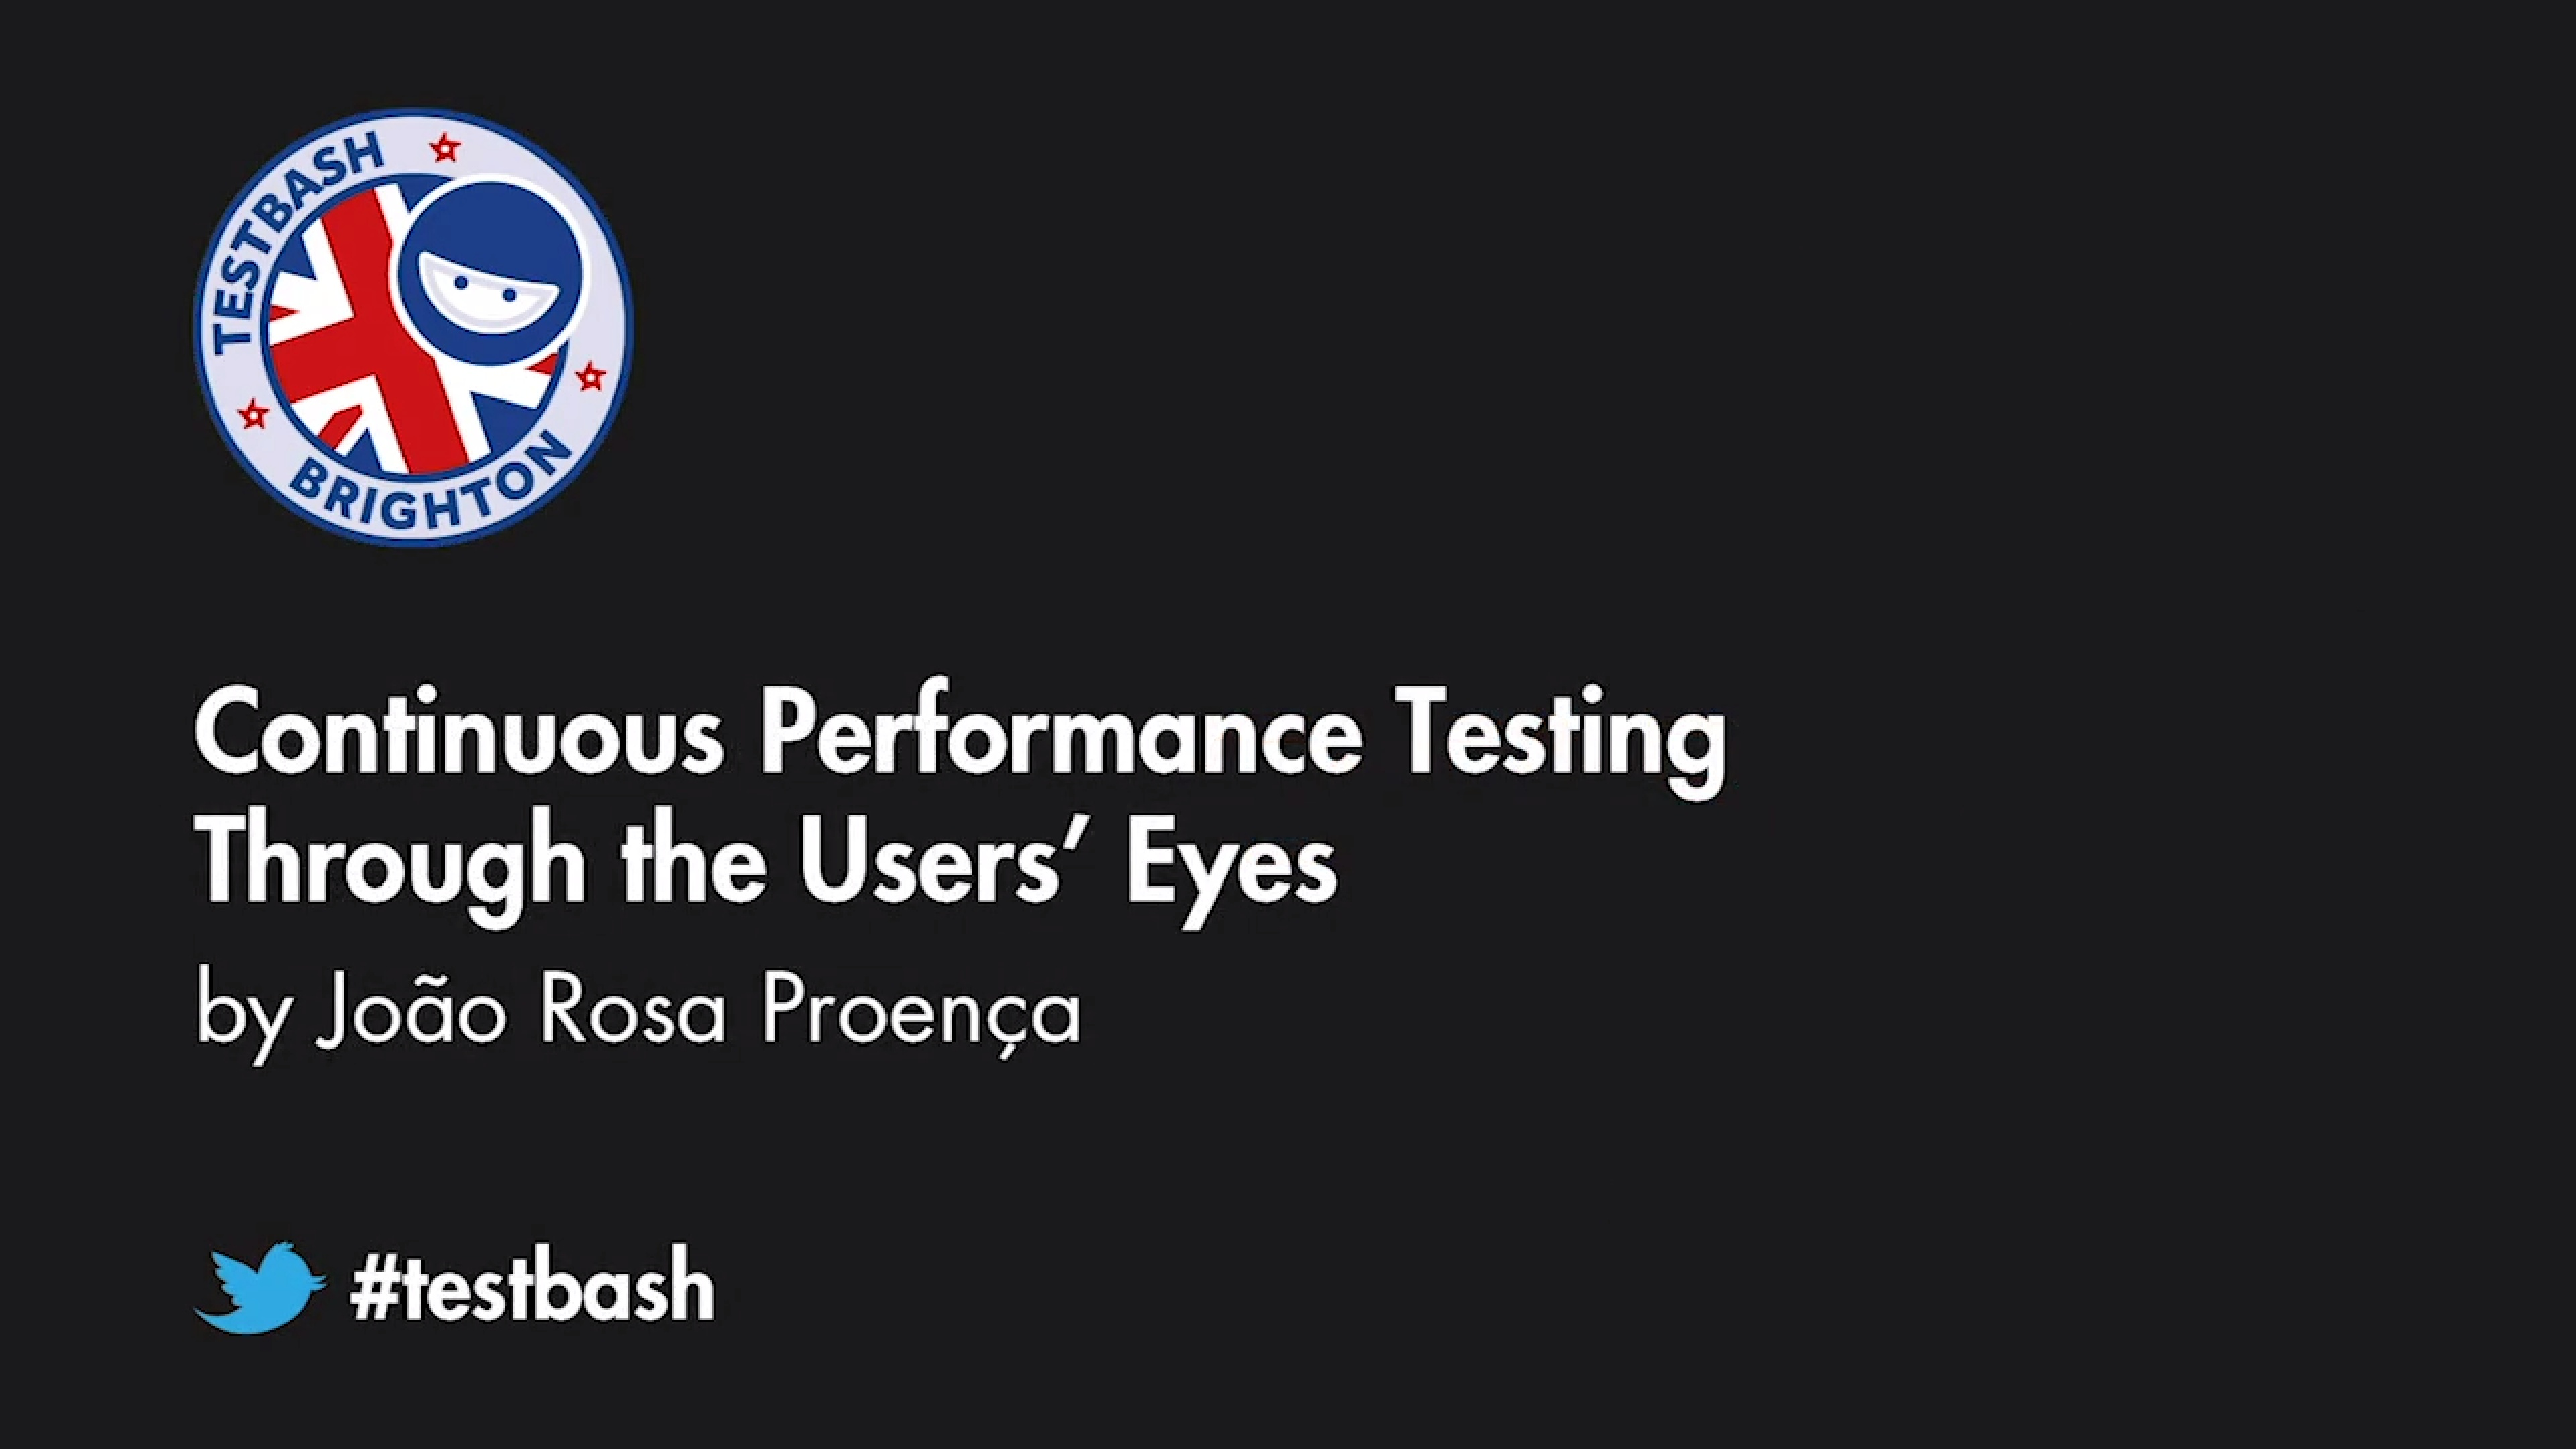 Continuous Performance Testing Through the Users' Eyes - João Rosa Proença